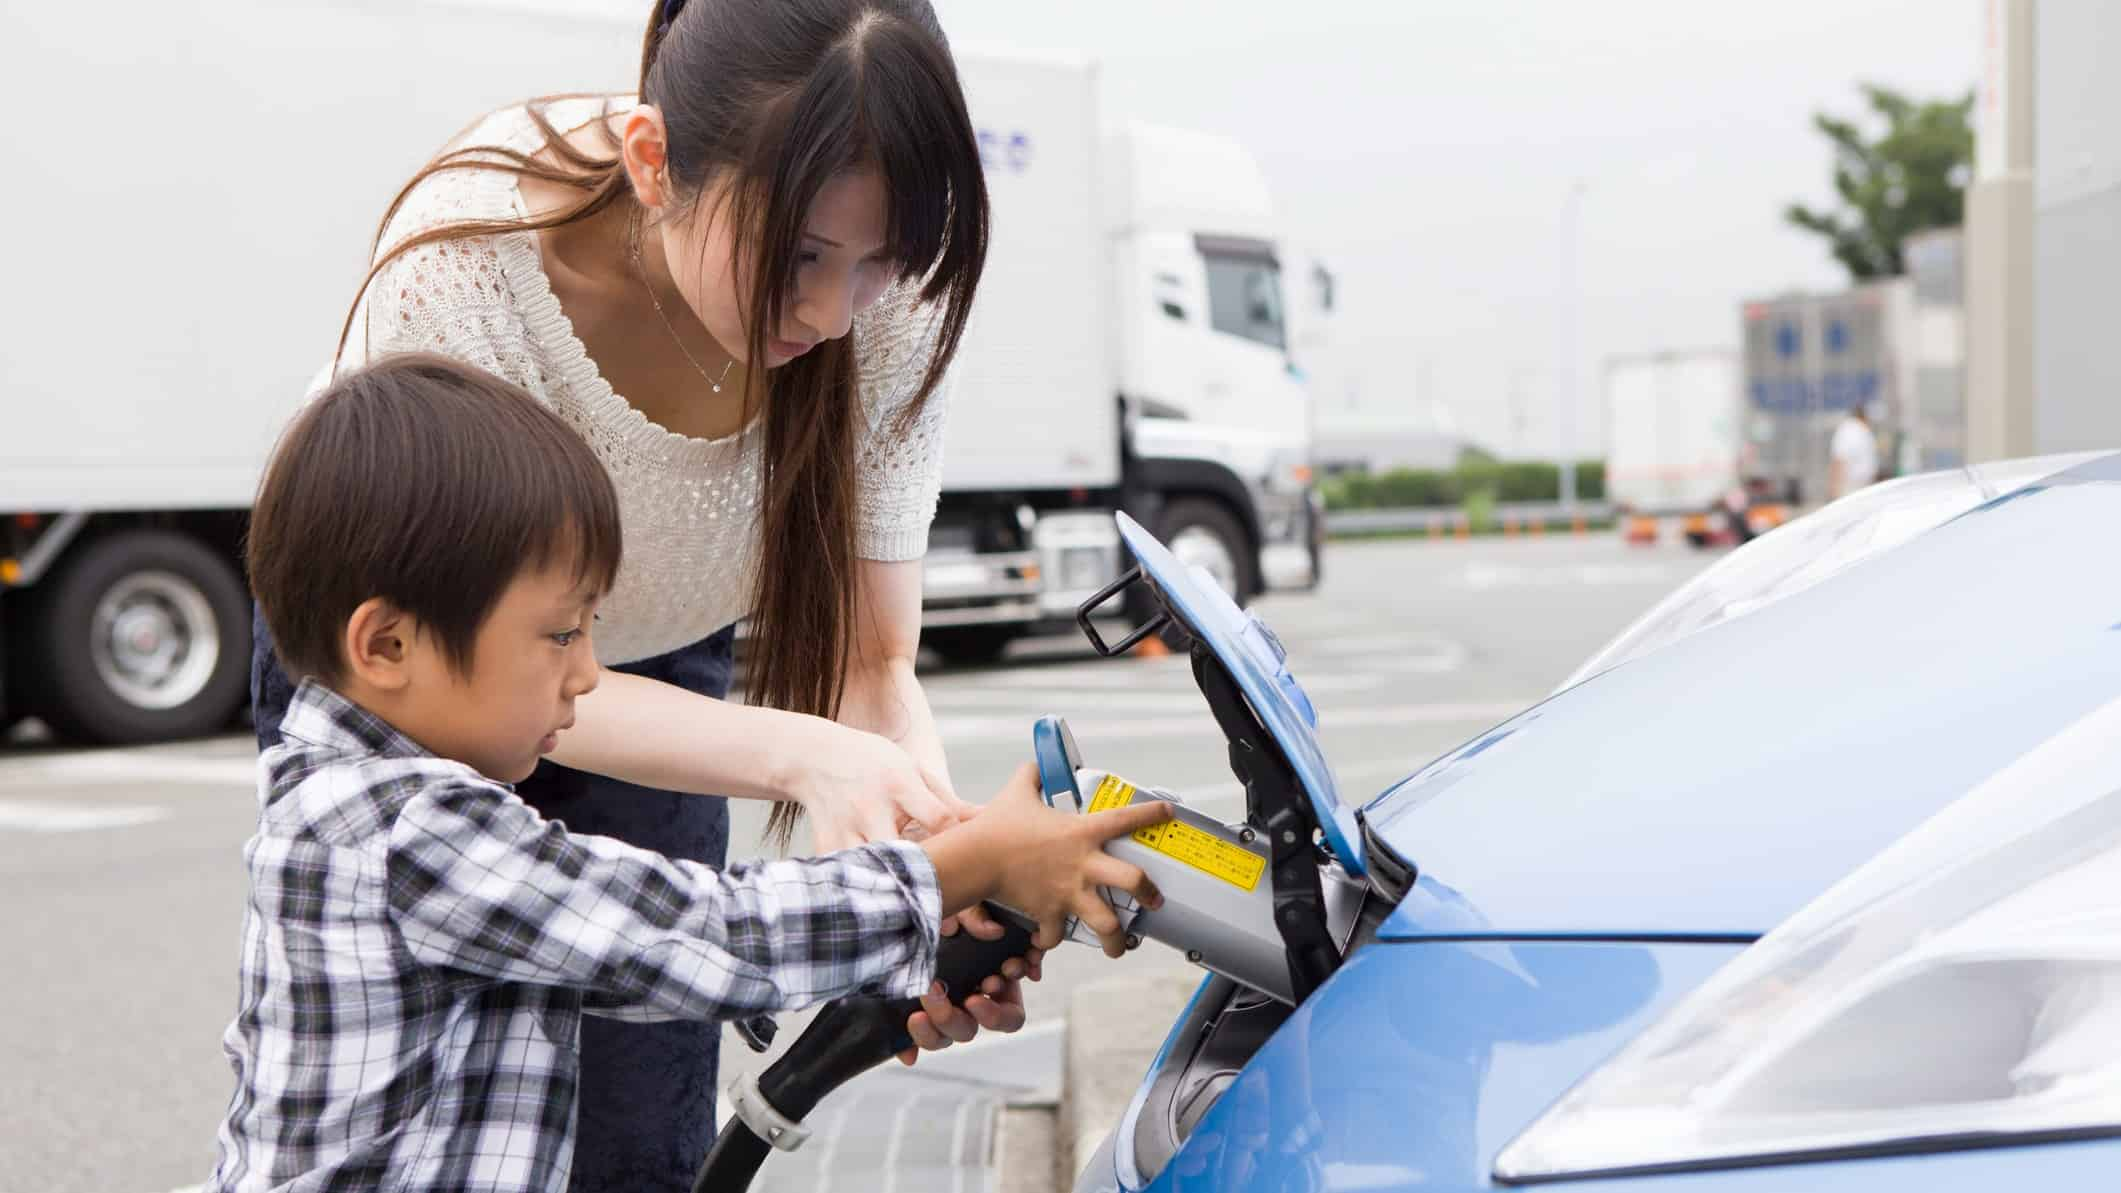 Boy and woman charge electric vehicle